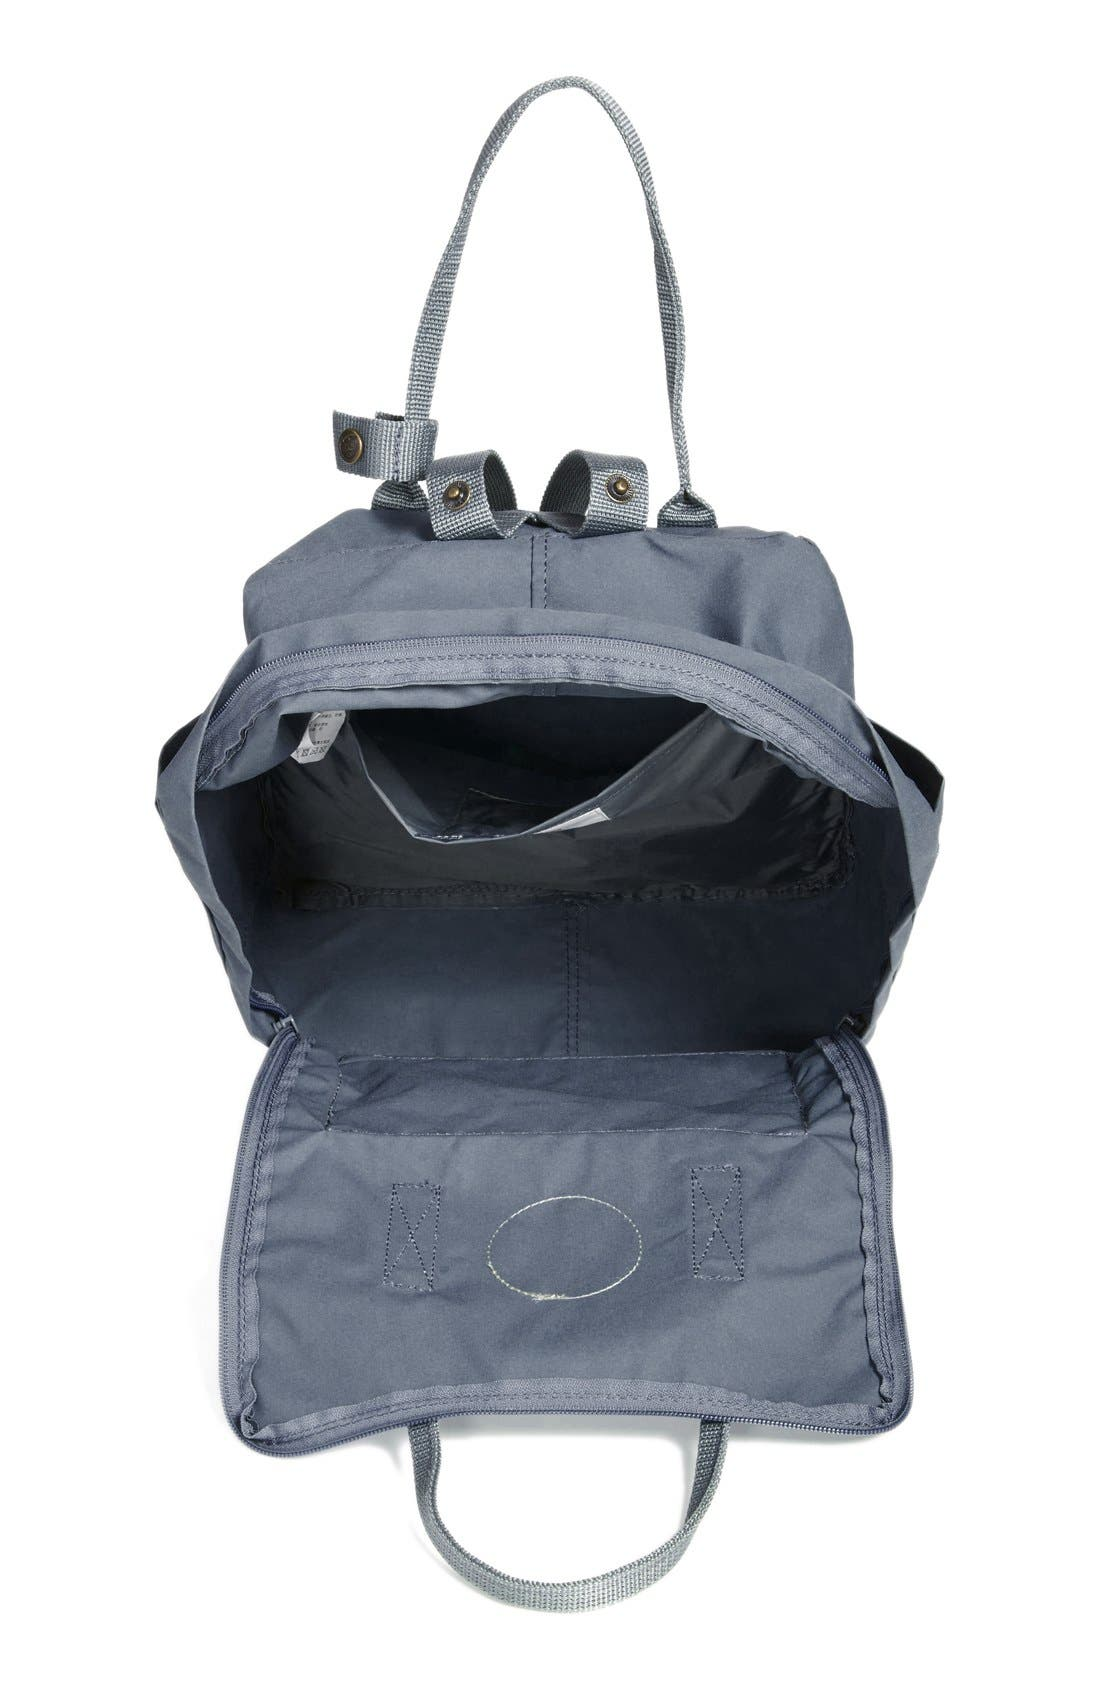 FJÄLLRÄVEN,                             Kånken Water Resistant Backpack,                             Alternate thumbnail 9, color,                             GRAPHITE